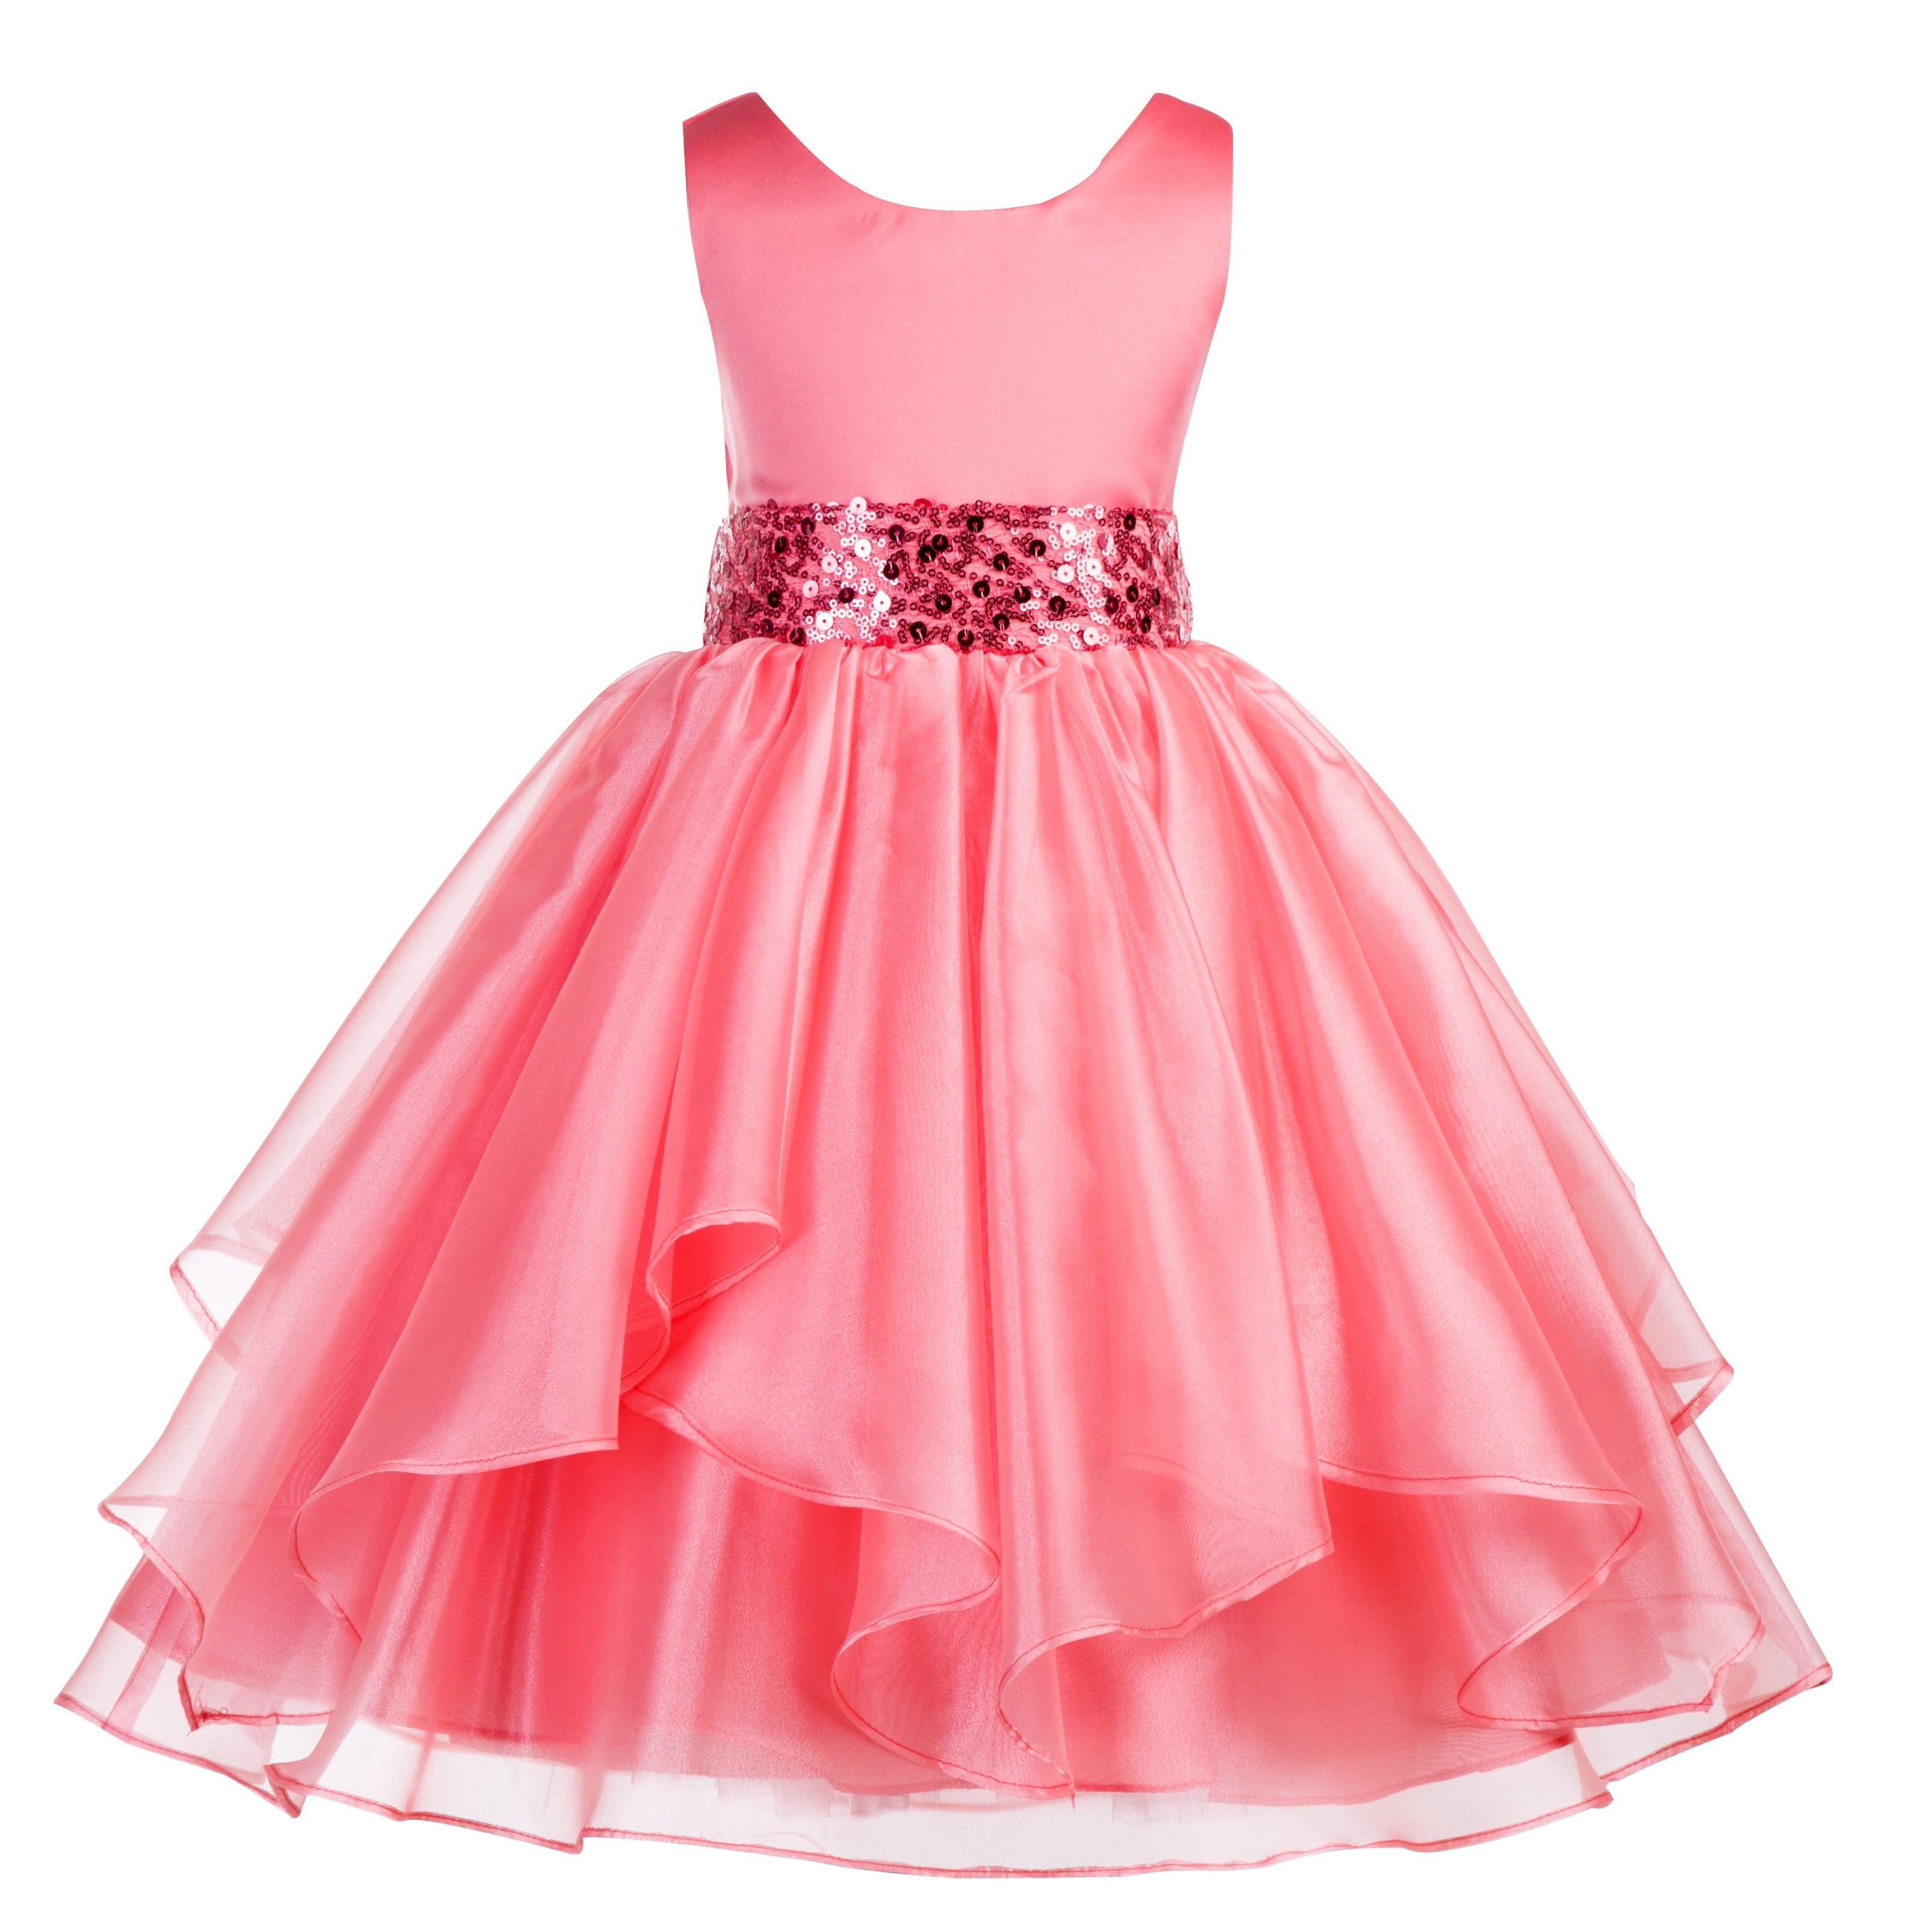 Ekidsbridal Asymmetric Ruffles Organza Layers Flower Girl Dress